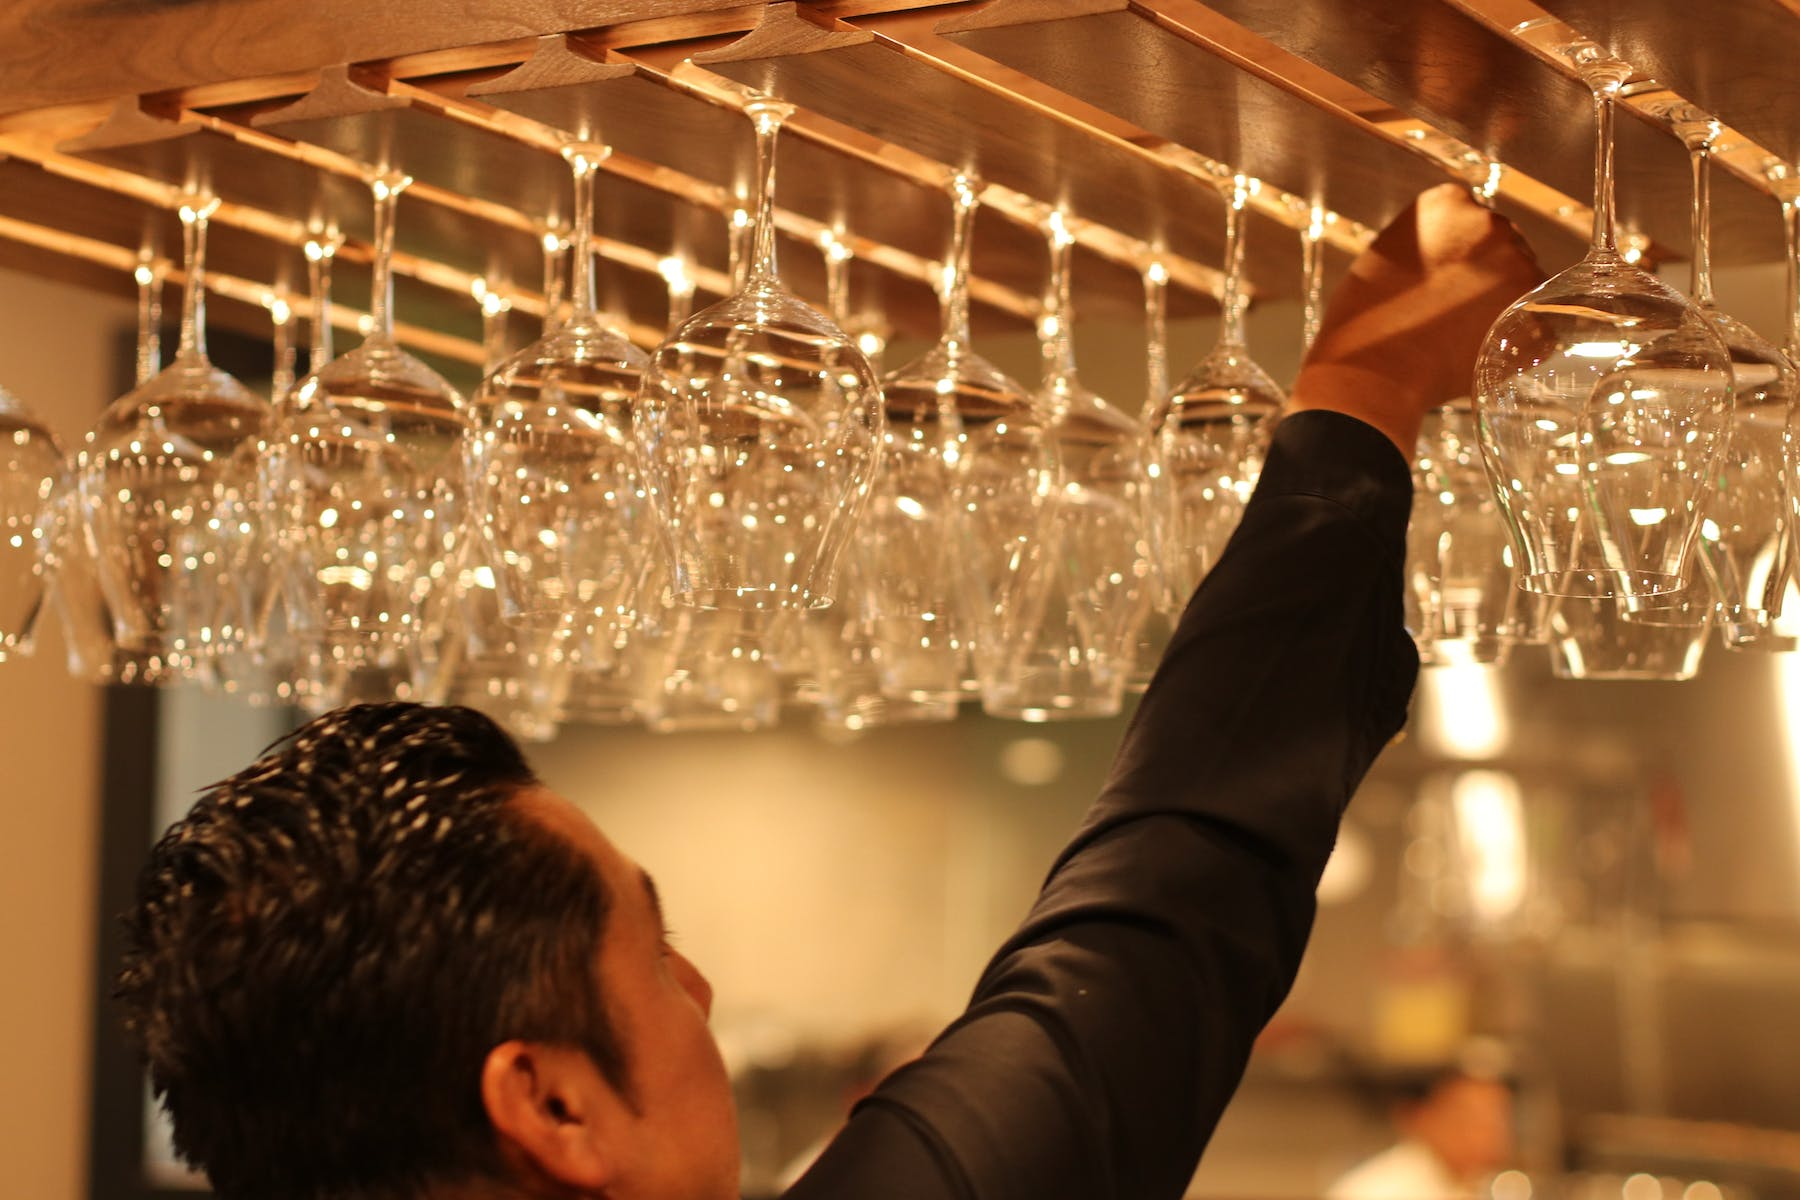 man placing wine glasses in a glass dispenser